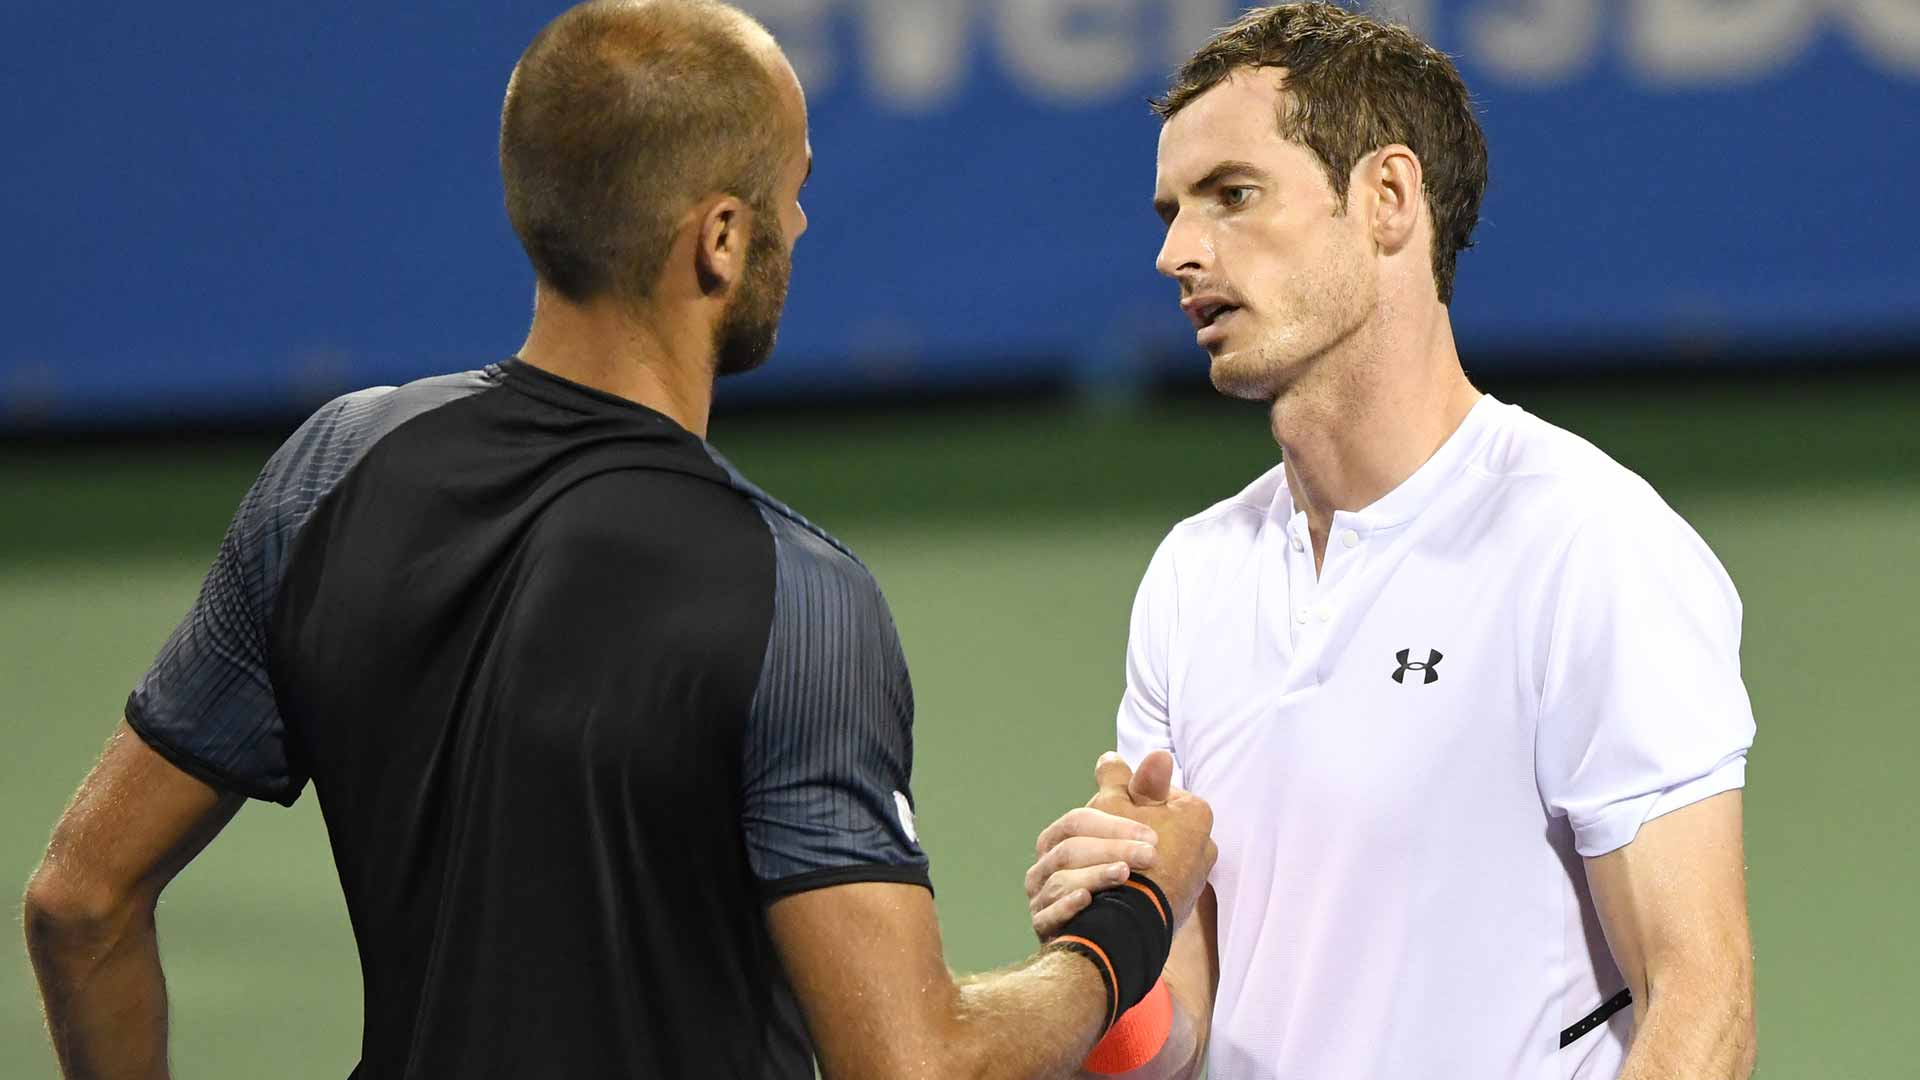 Marius Copil, Andy Murray